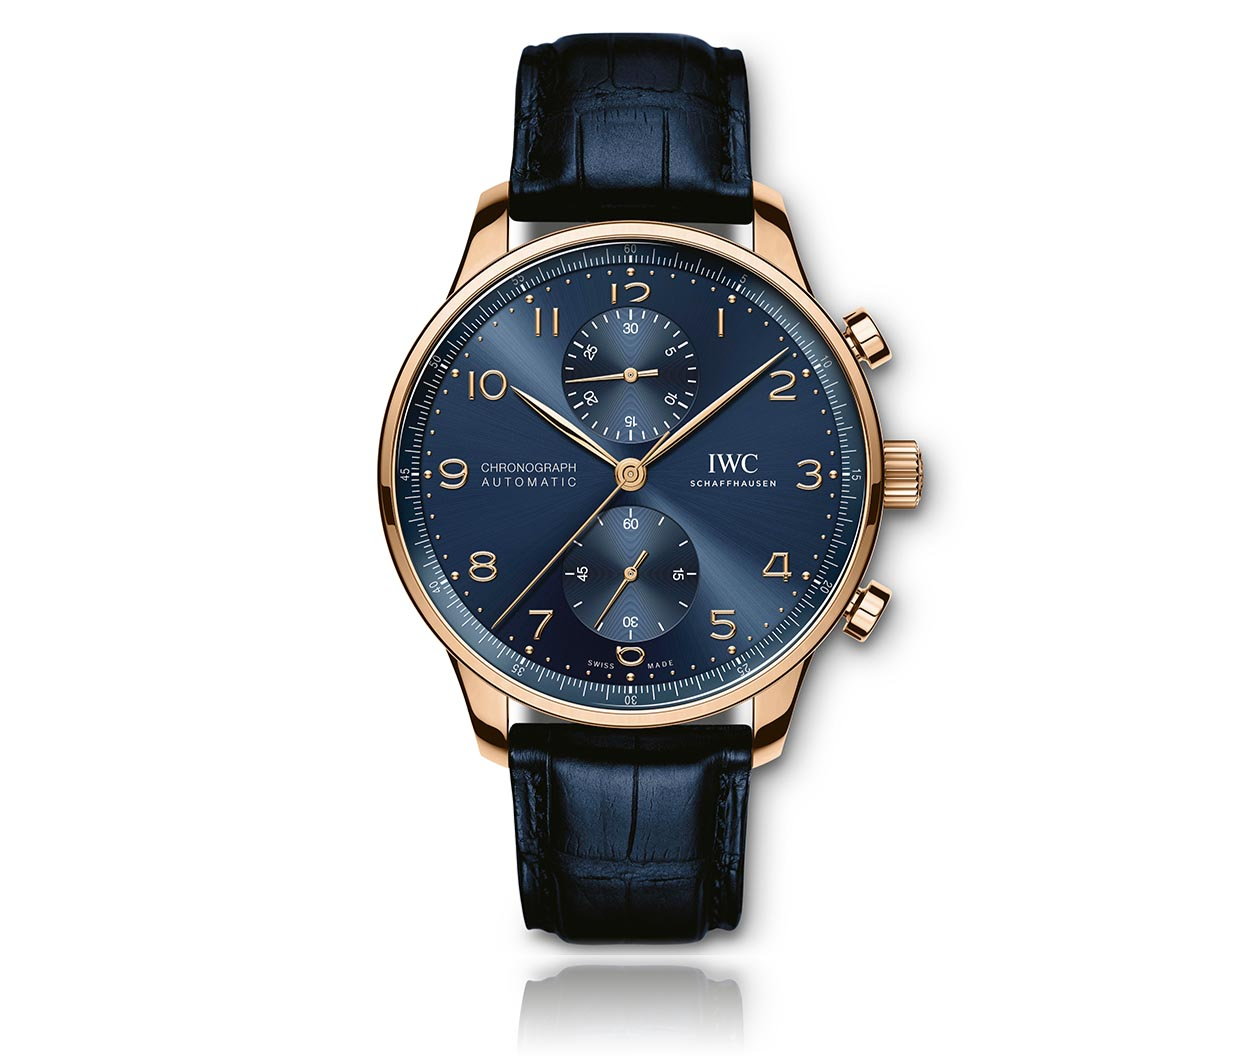 IWC Portugieser ChronographBoutiqueEdition IW371614 Carousel 1 FINAL